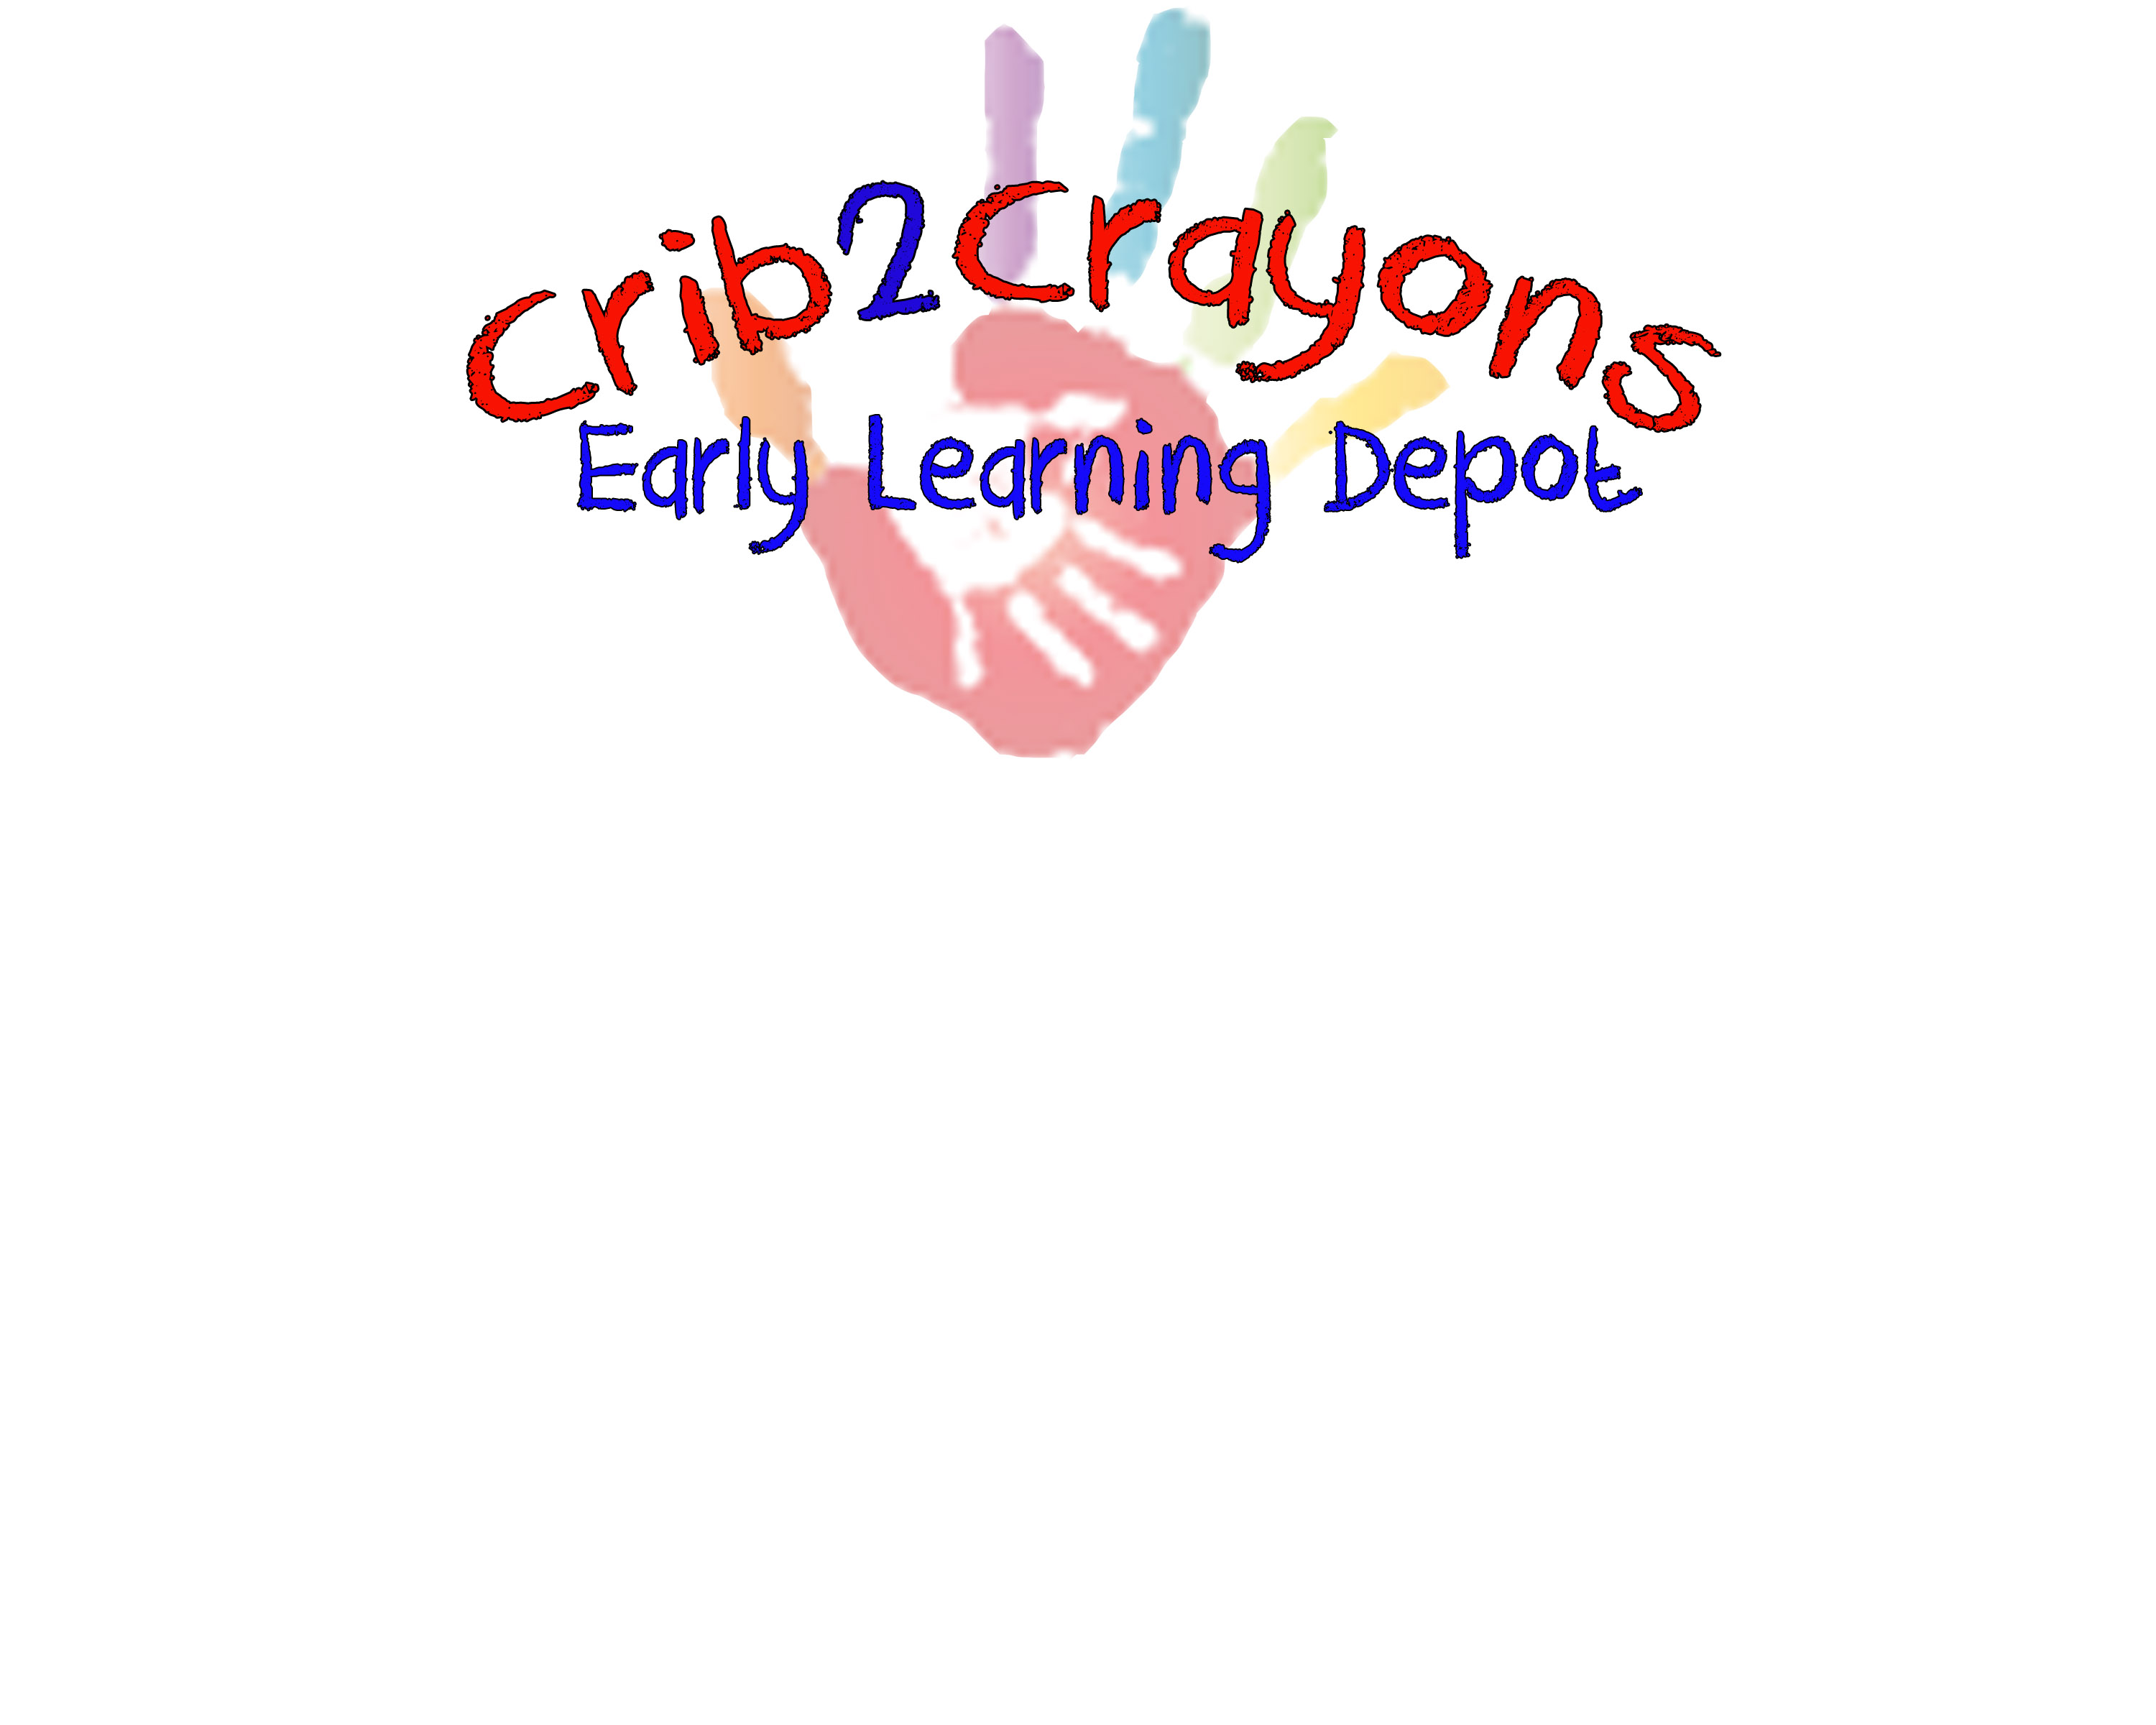 Crib2Crayons Early Learning Depot